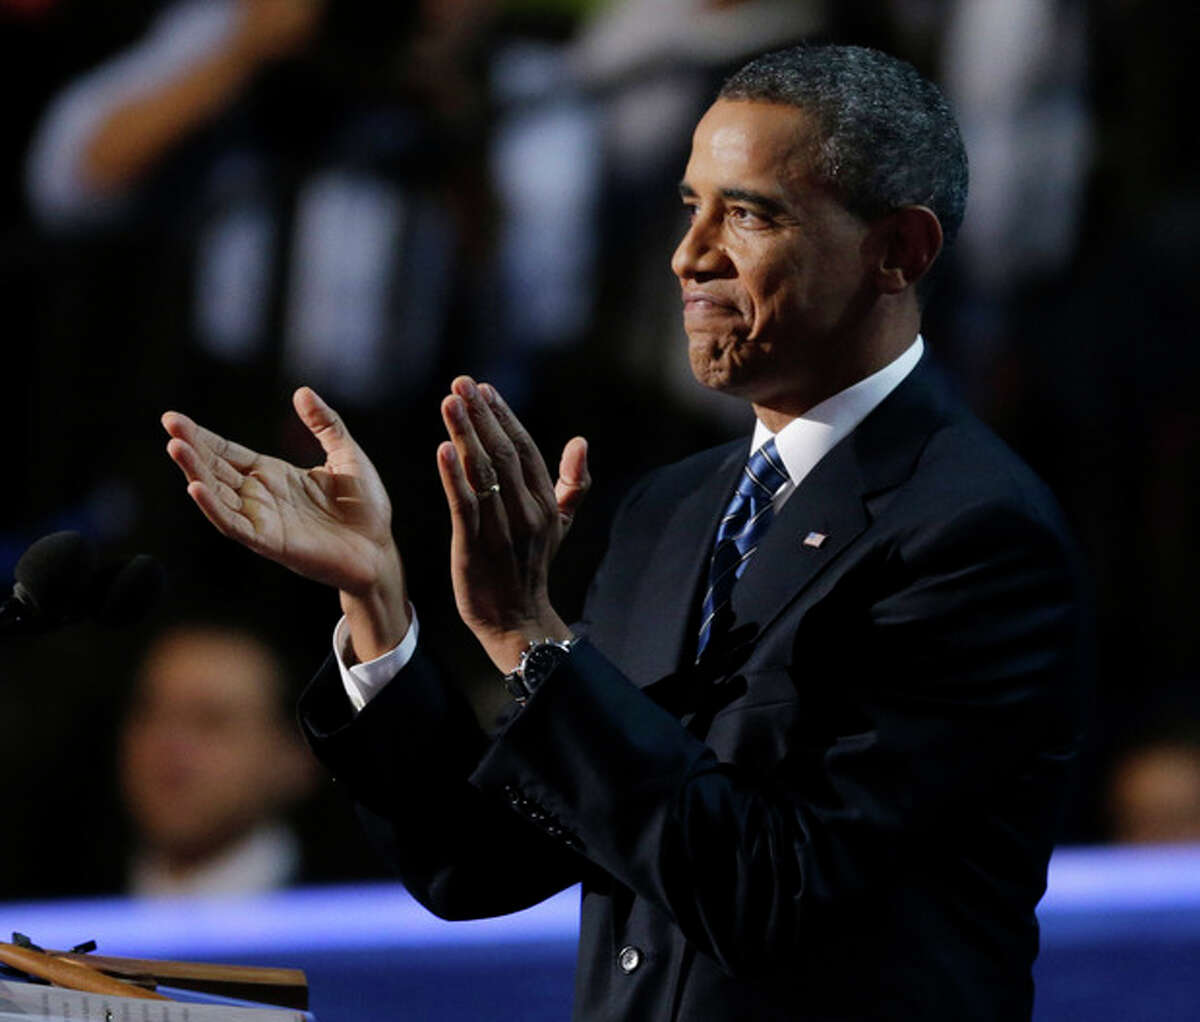 President Barack Obama applauds before his speech to the Democratic National Convention in Charlotte, N.C., on Thursday, Sept. 6, 2012. (AP Photo/Lynne Sladky)